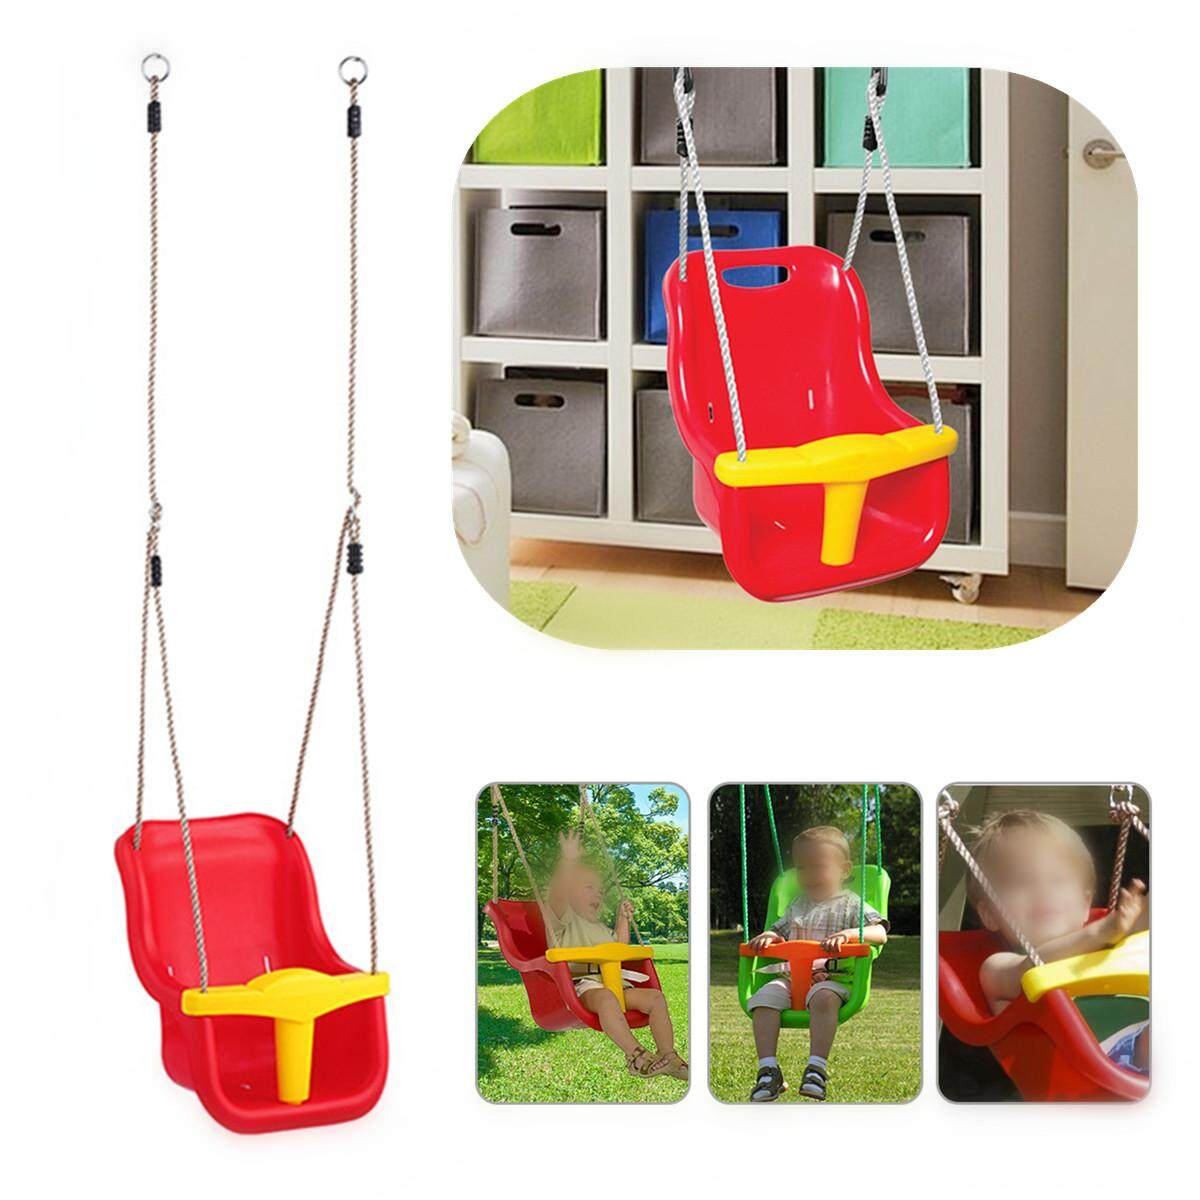 Swings Buy At Best Price In Malaysia Pliko Baby Bouncer Rocking Chair Hammock 3 1 Infant To Toddler Swing Set Secure Detachable Outdoor Play Patio Garden